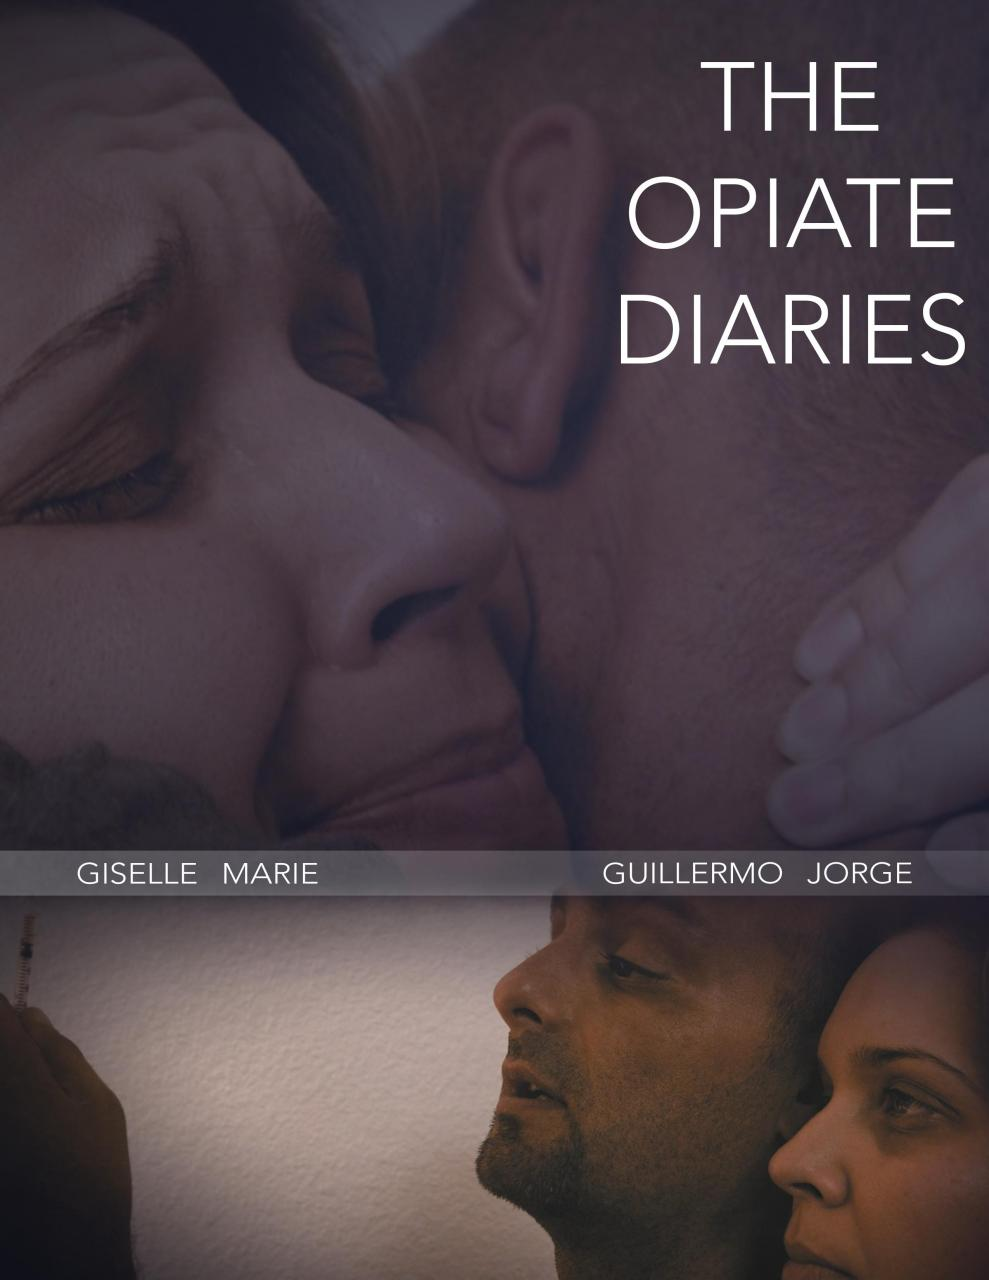 The Opiate Diaries